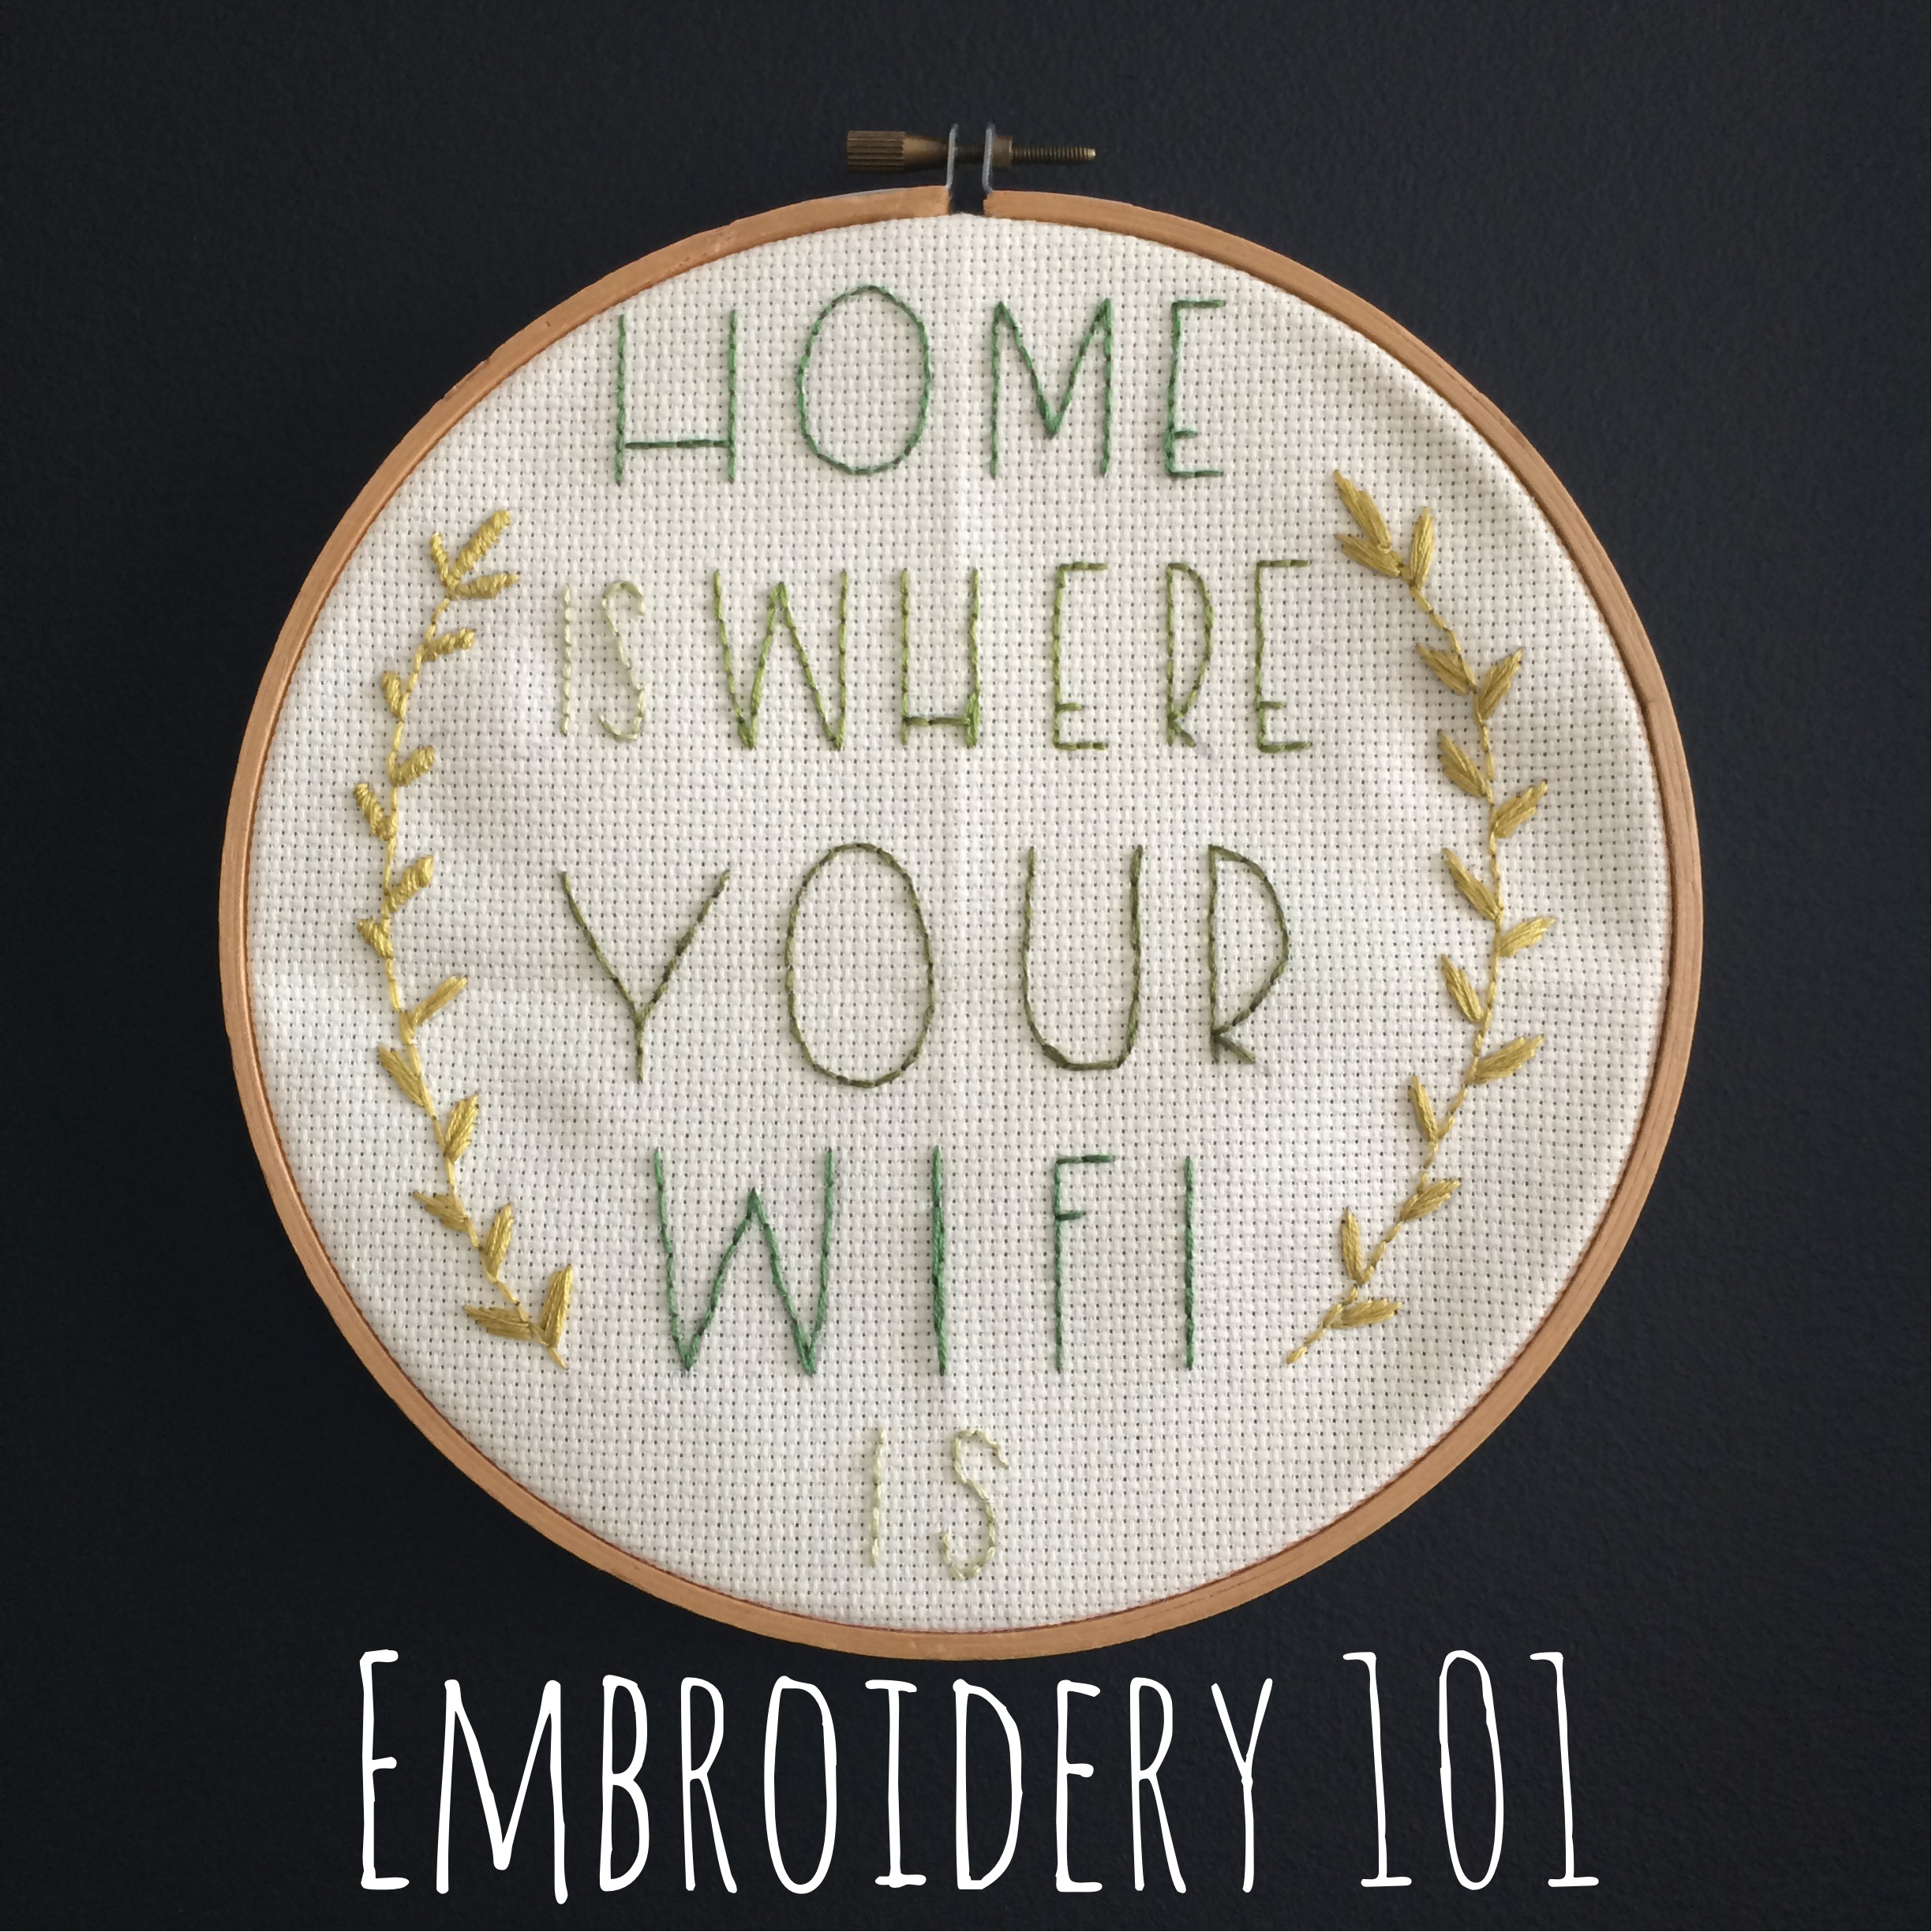 Embroidery 101 | Mrs Amber Apple Blog